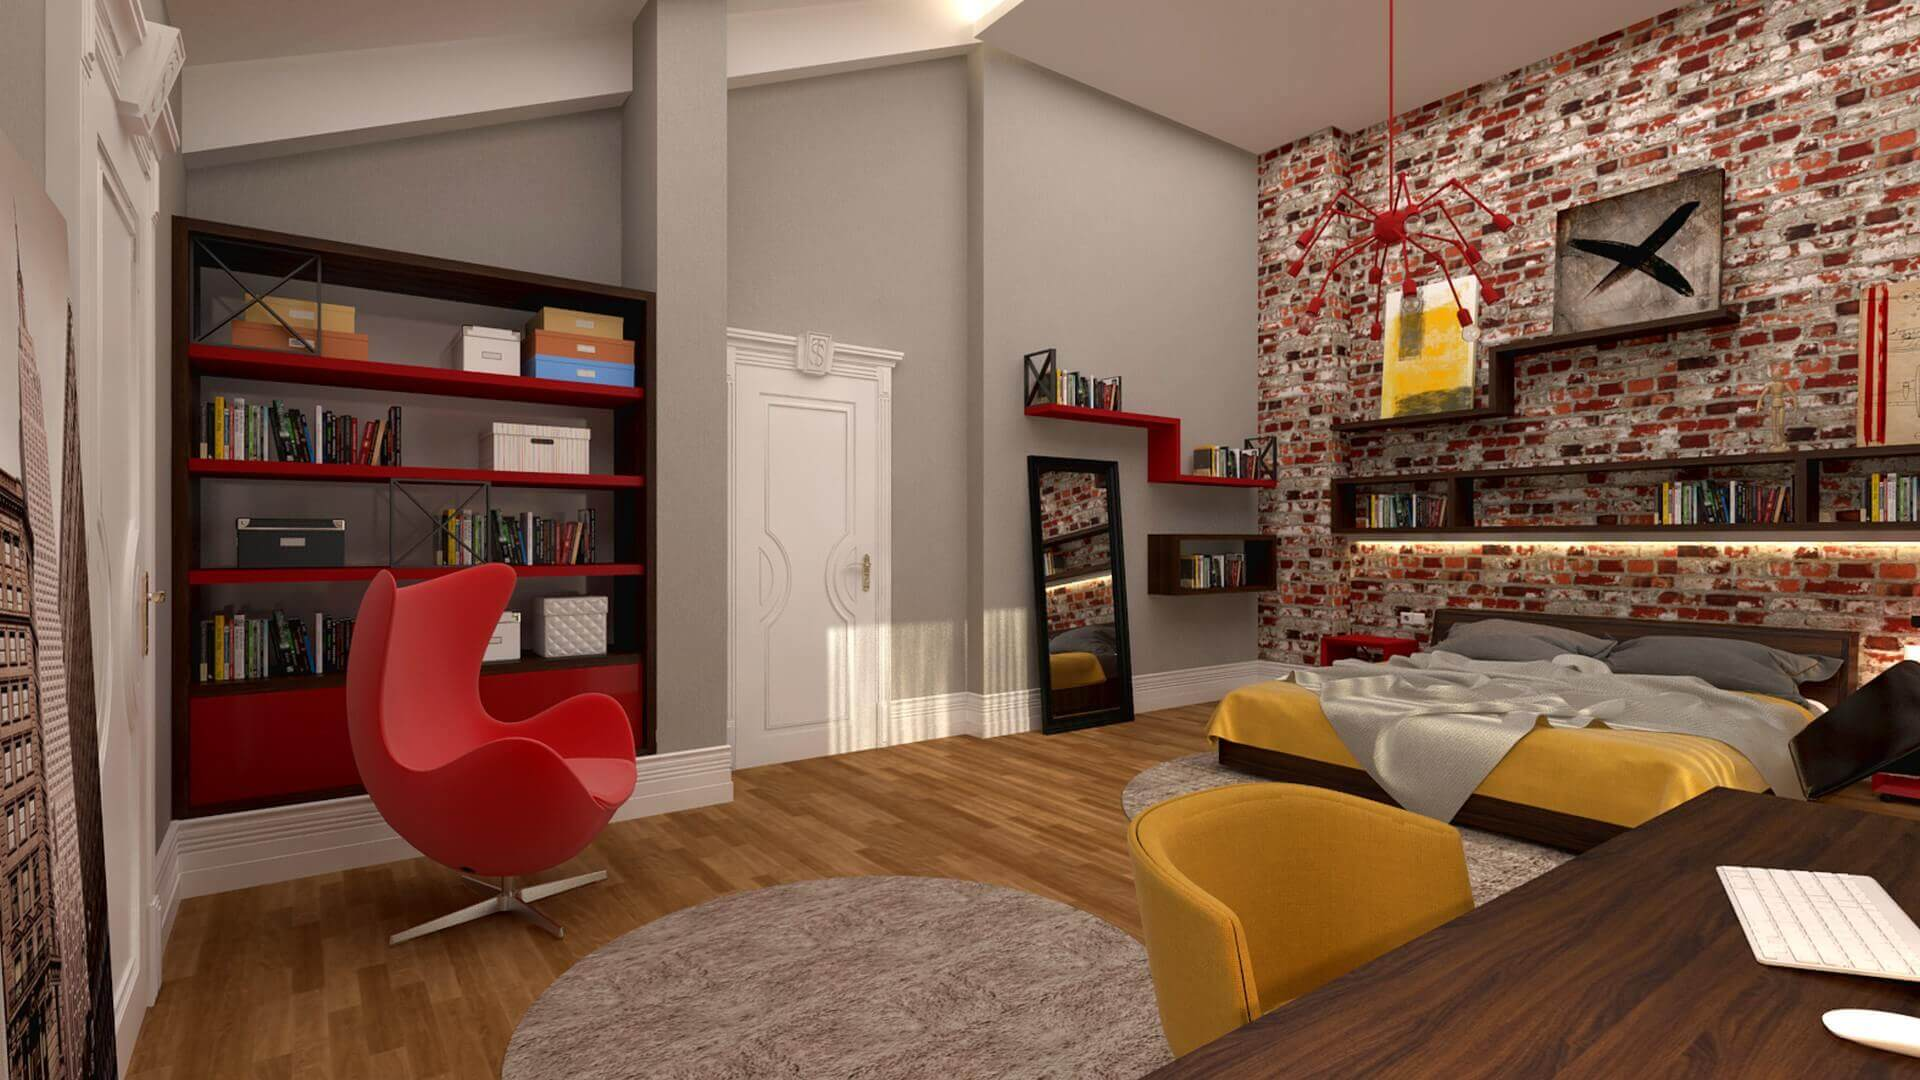 Ankara house projects 2881 Private Project Residential